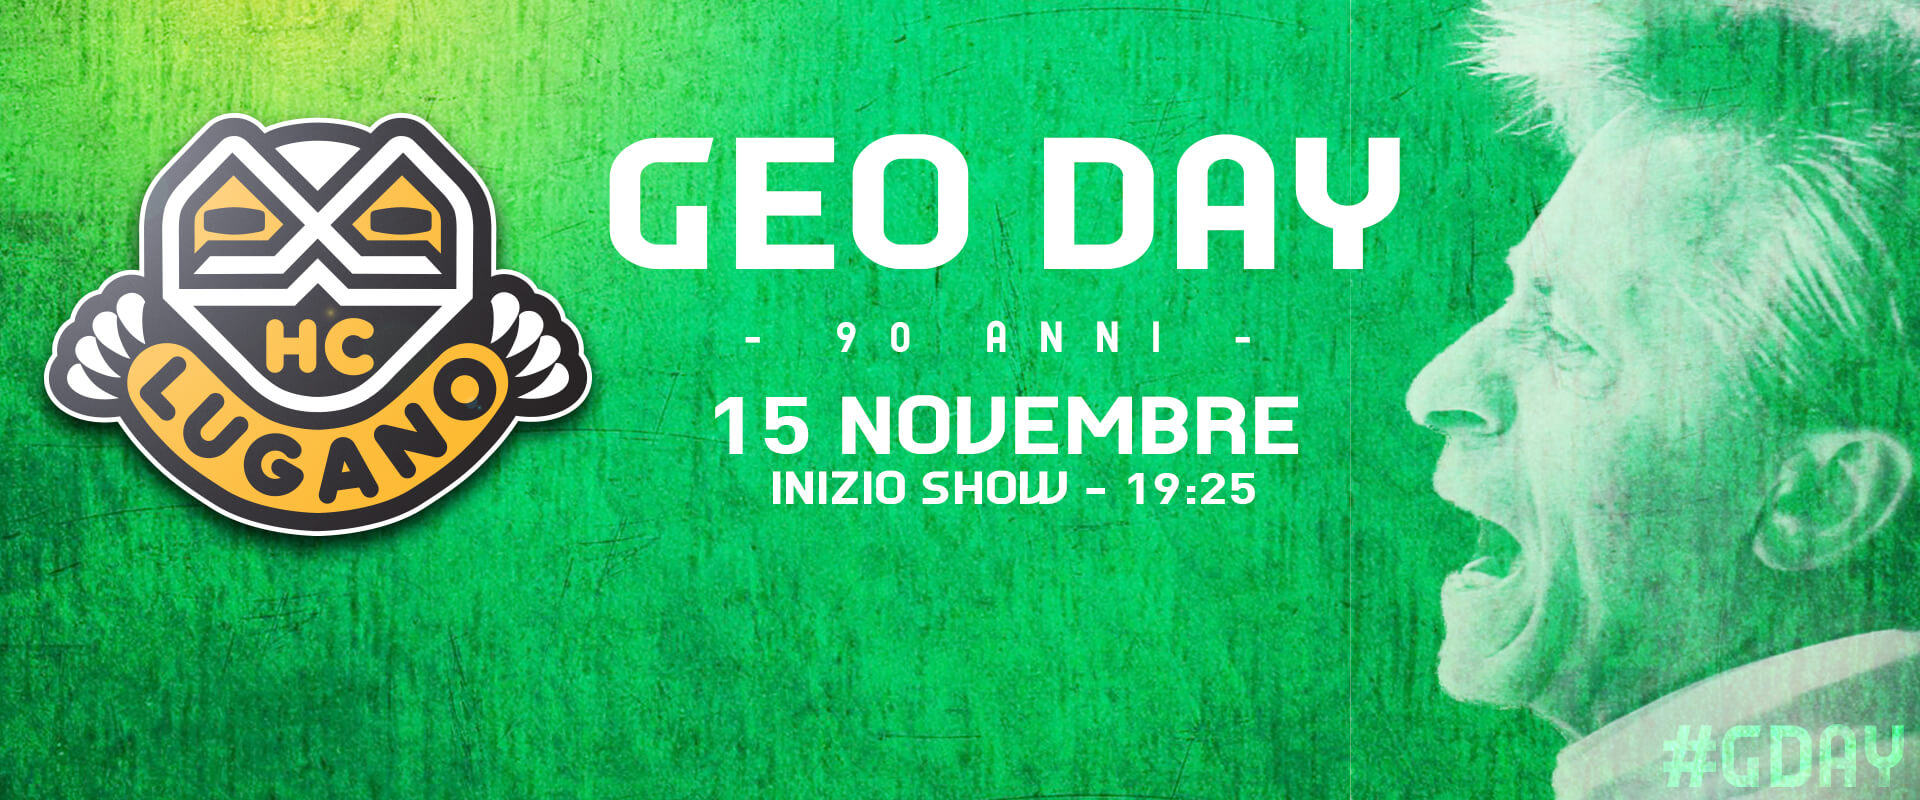 GEO DAY NEWS SITO